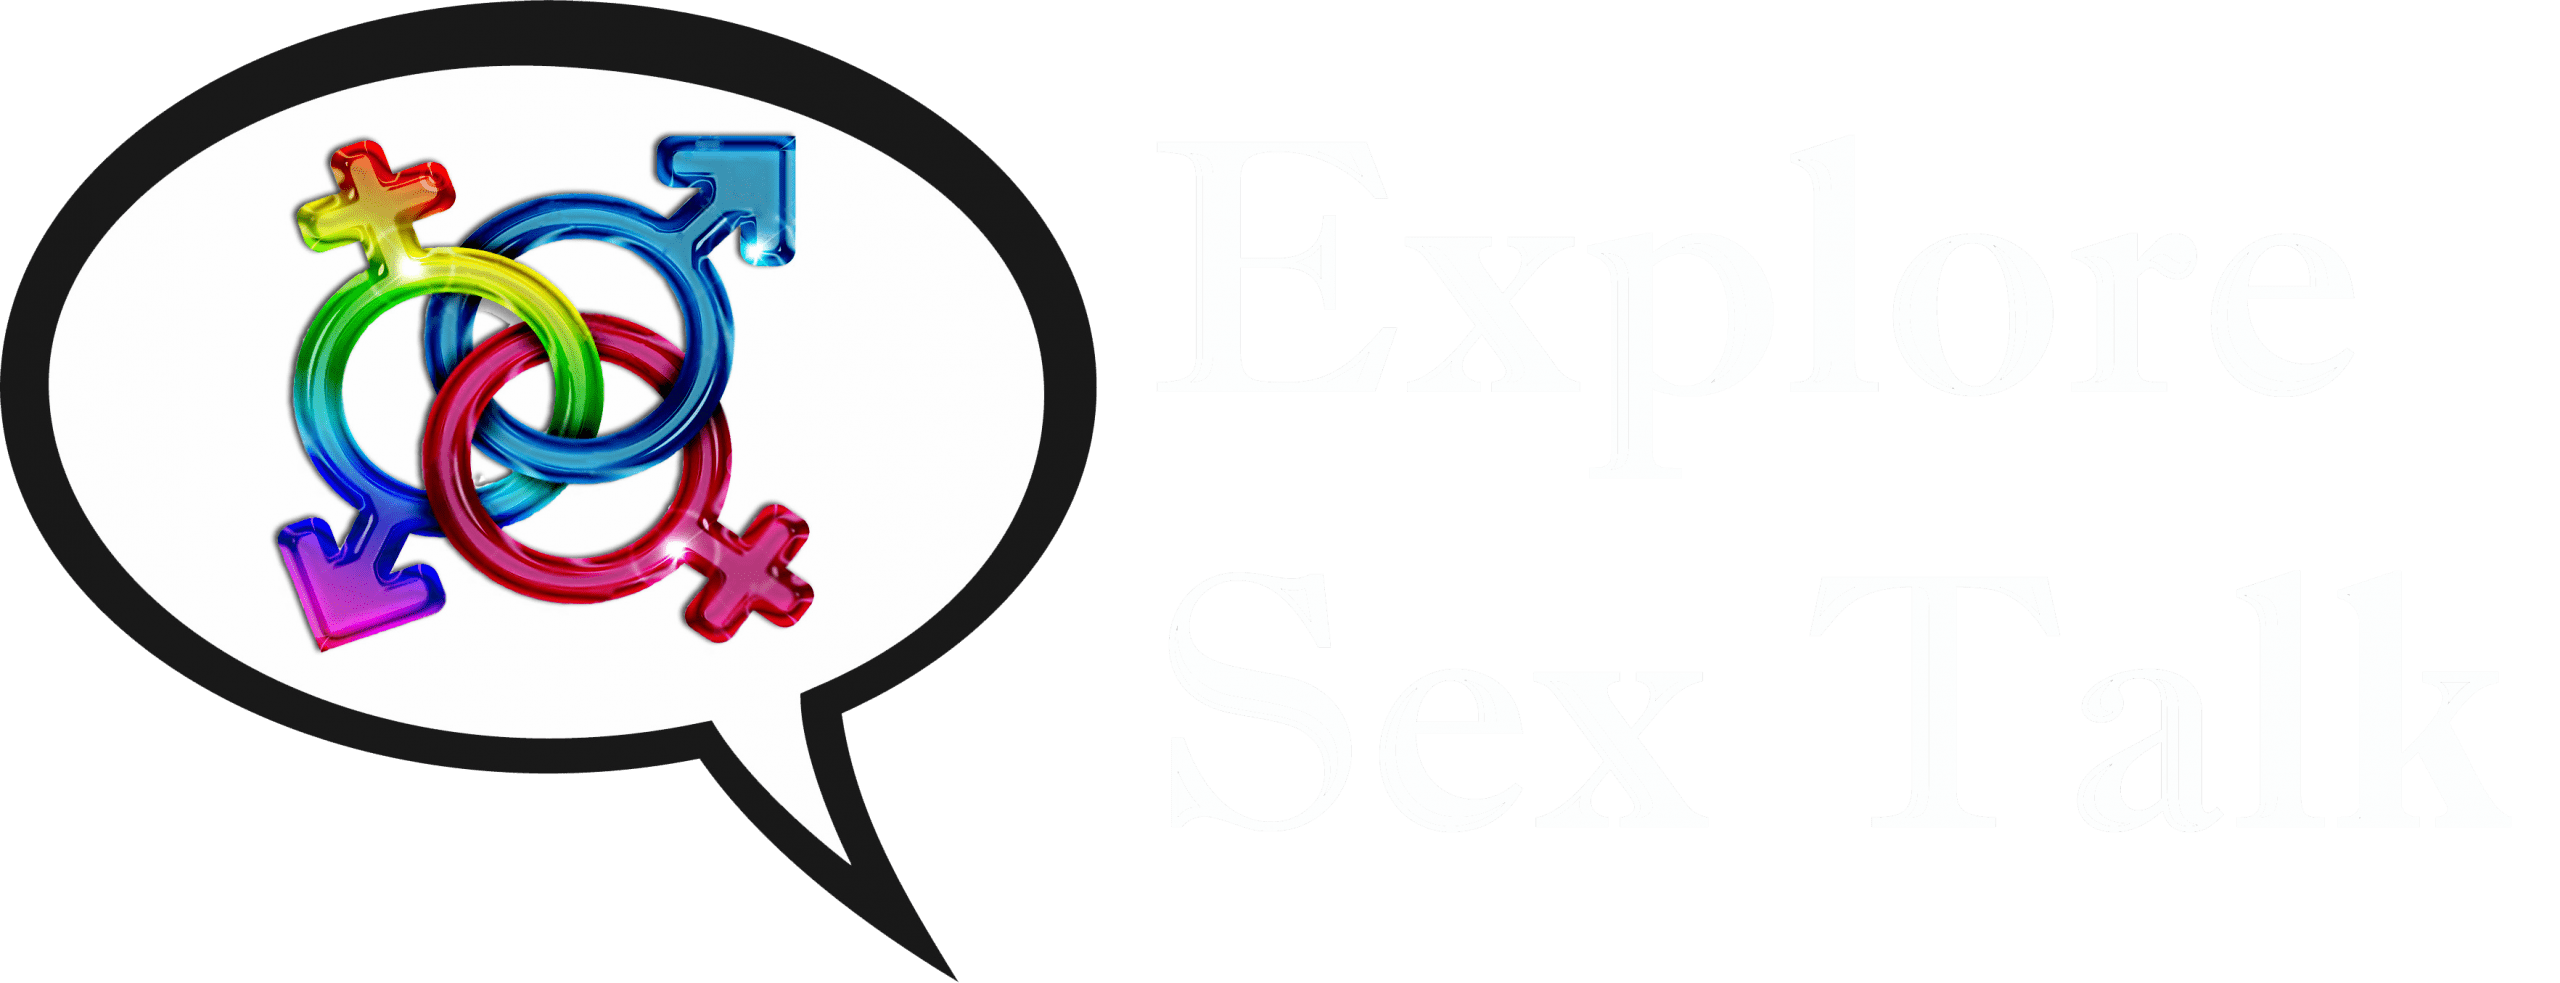 Explore Sex Talk